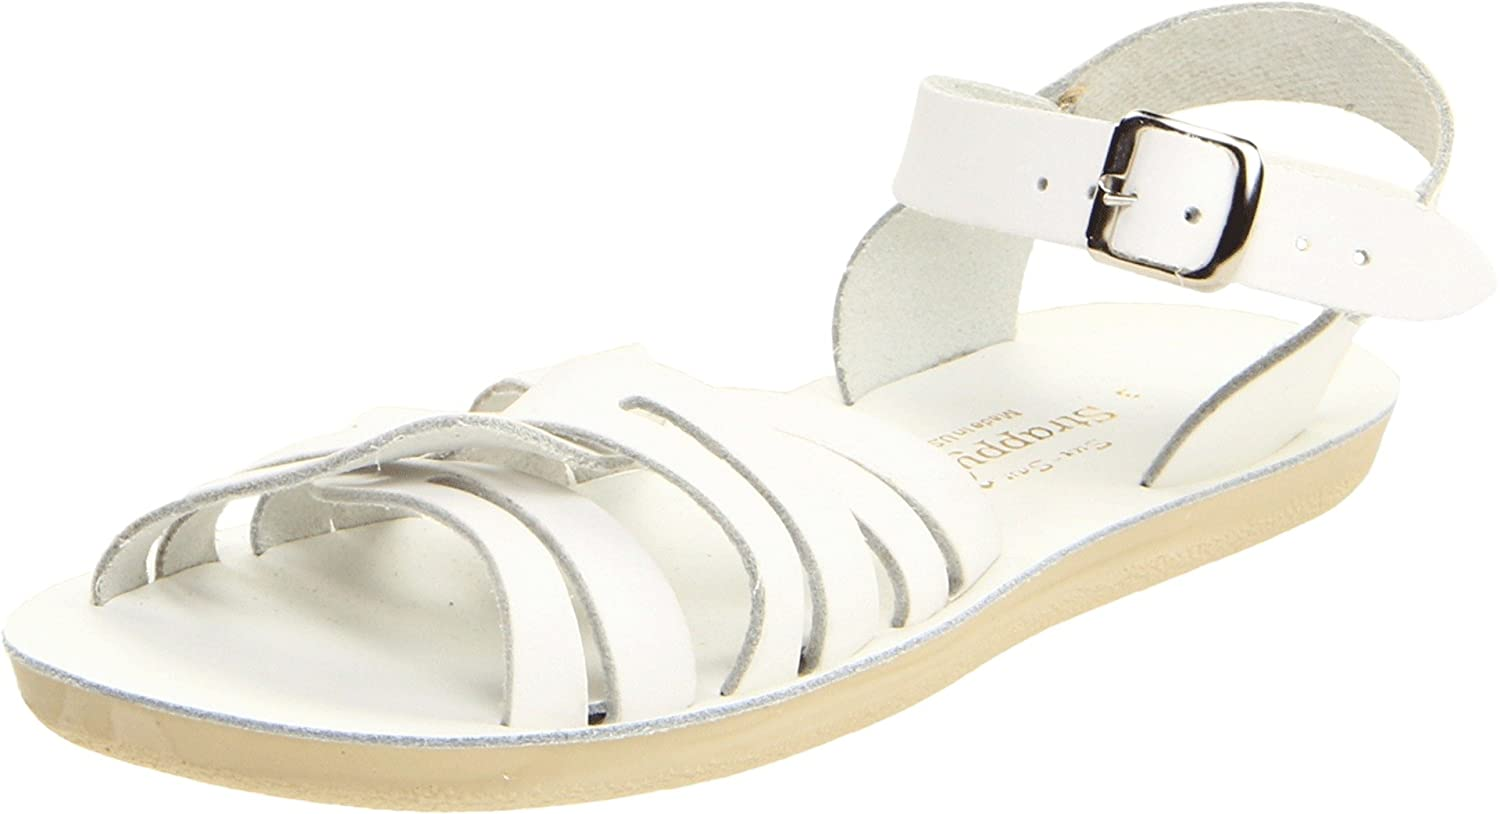 K Saltwater by Hoy Style 8100 Salt Water Sandals by Hoy Shoe Strappy Sandal Toddler//Little Kid//Big Kid//Womens